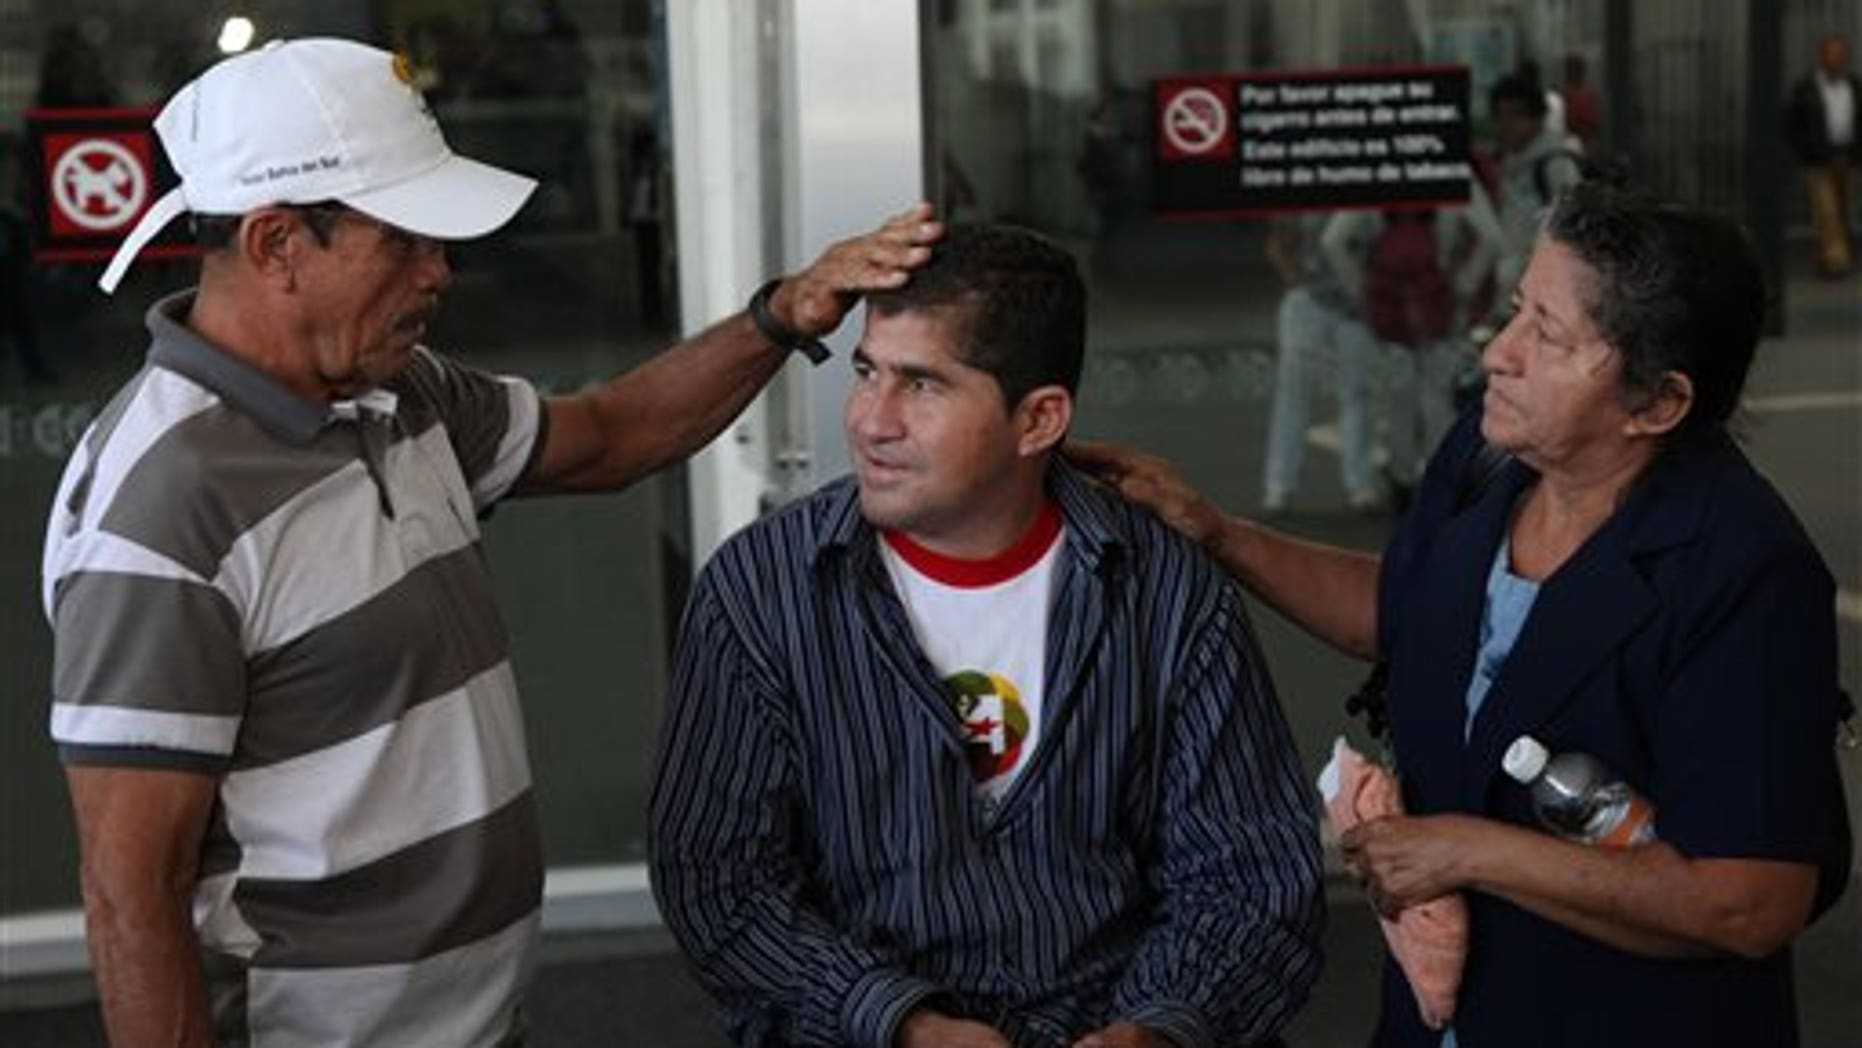 Sea survivor Jose Salvador Alvarenga, center, is flanked by his father Jose Ricardo and mother Maria Julia, before entering the waiting hall for national departures, after arriving at the airport in Mexico City, Friday, March 14, 2014. The Salvadoran fisherman, who was lost at sea for 13 months, traveled from El Salvador to Mexico to fulfill a promise he made to his dead sea mate, Mexican Ezequiel Cordoba. Alvarenga said Cordoba died a month into their ordeal because he couldn't stomach the diet of raw fish, turtles and birds. (AP Photo/Marco Ugarte)